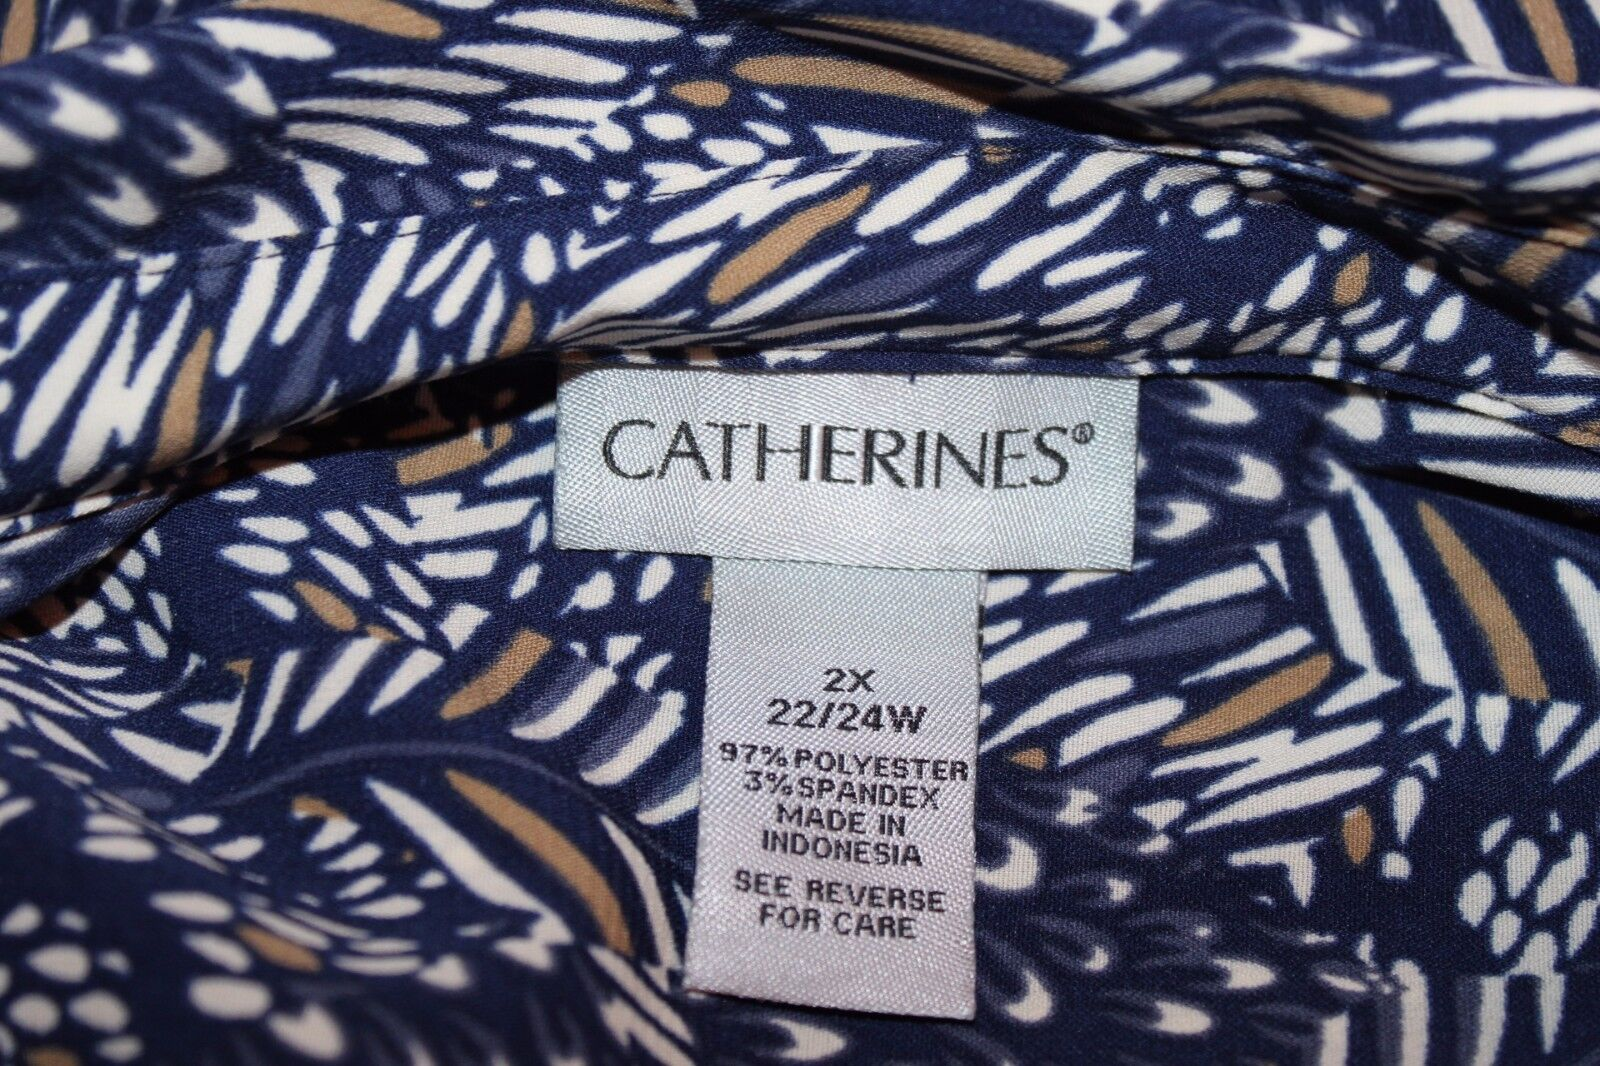 Catherines Navy Weiß Weiß Weiß Busy Pocketed Print Roll Up Sleeve Tabs Shirt Top Sz 2X 53624e